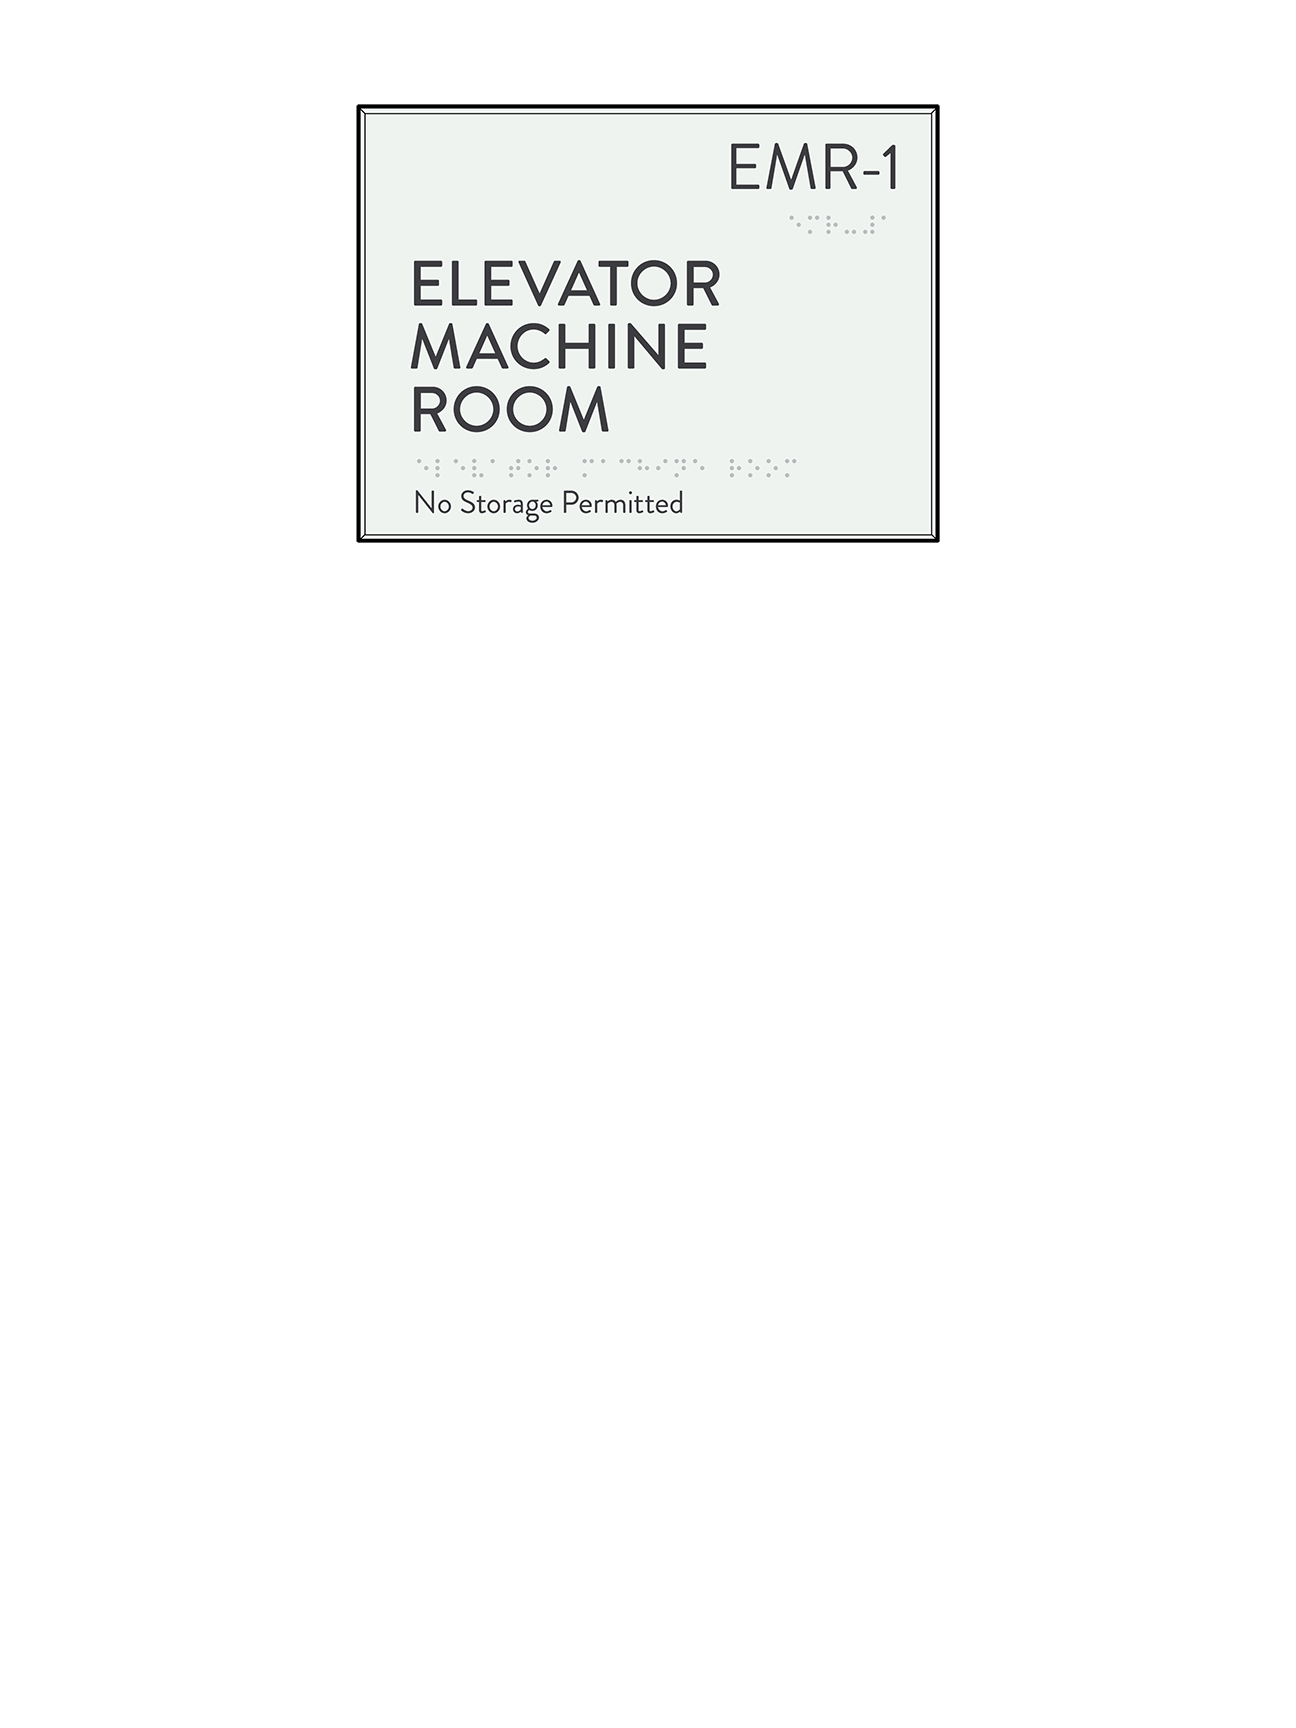 Utility Room Sign Interesting Price Request  Cascade Architectural Sign Family  Identia Sign Design Inspiration